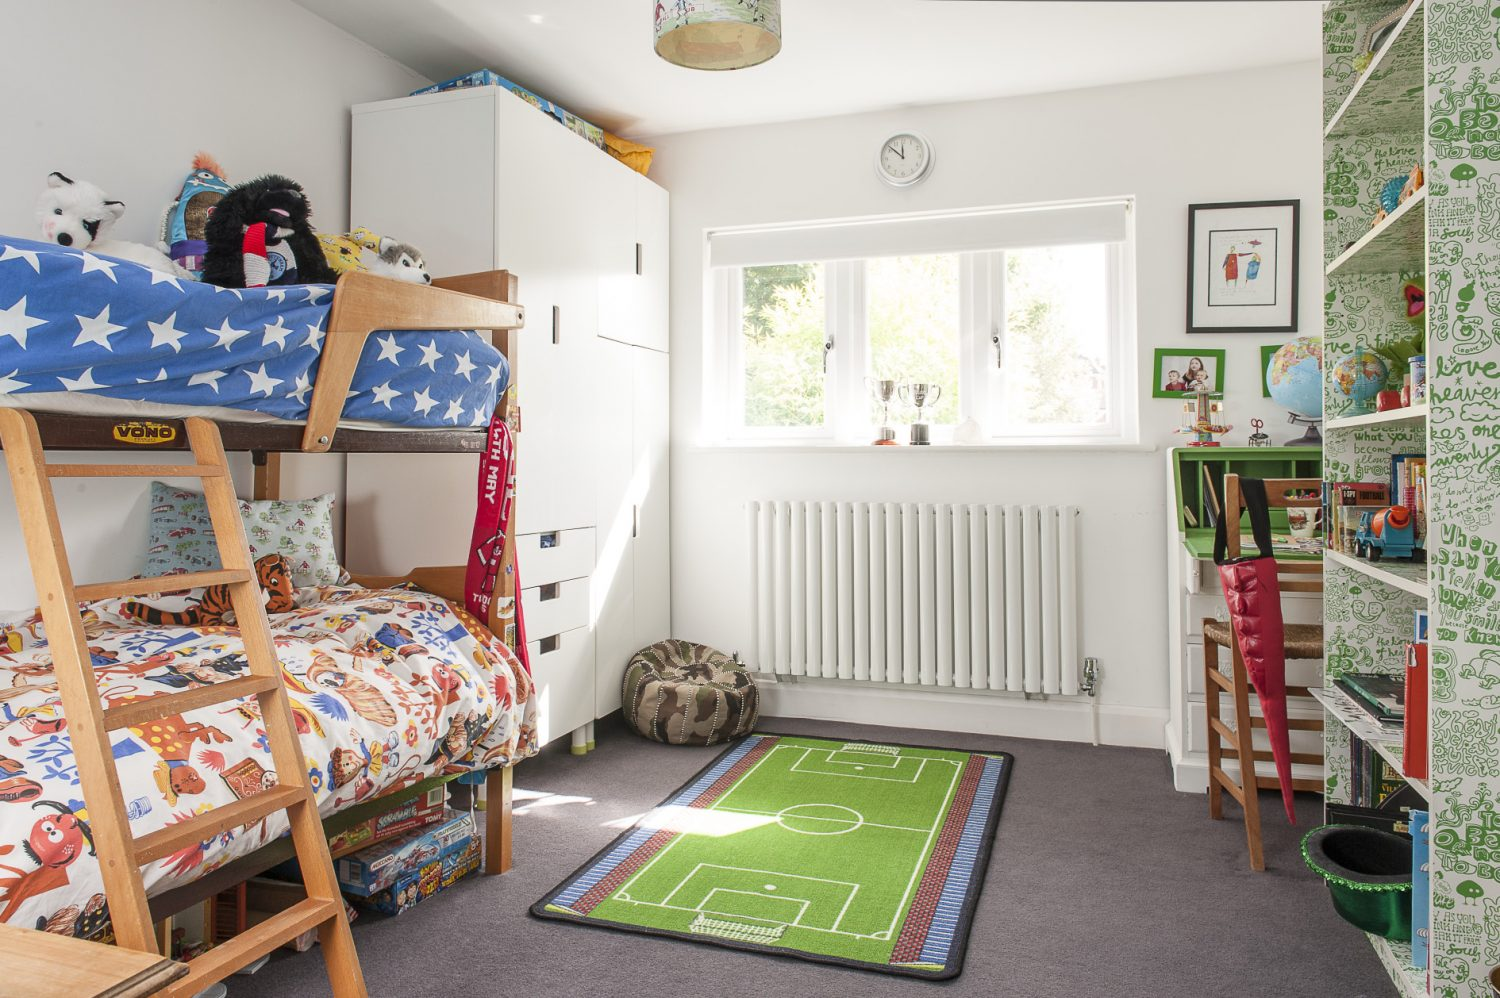 The children's rooms feature an eclectic mix of vintage toys and bold, contemporary accessories